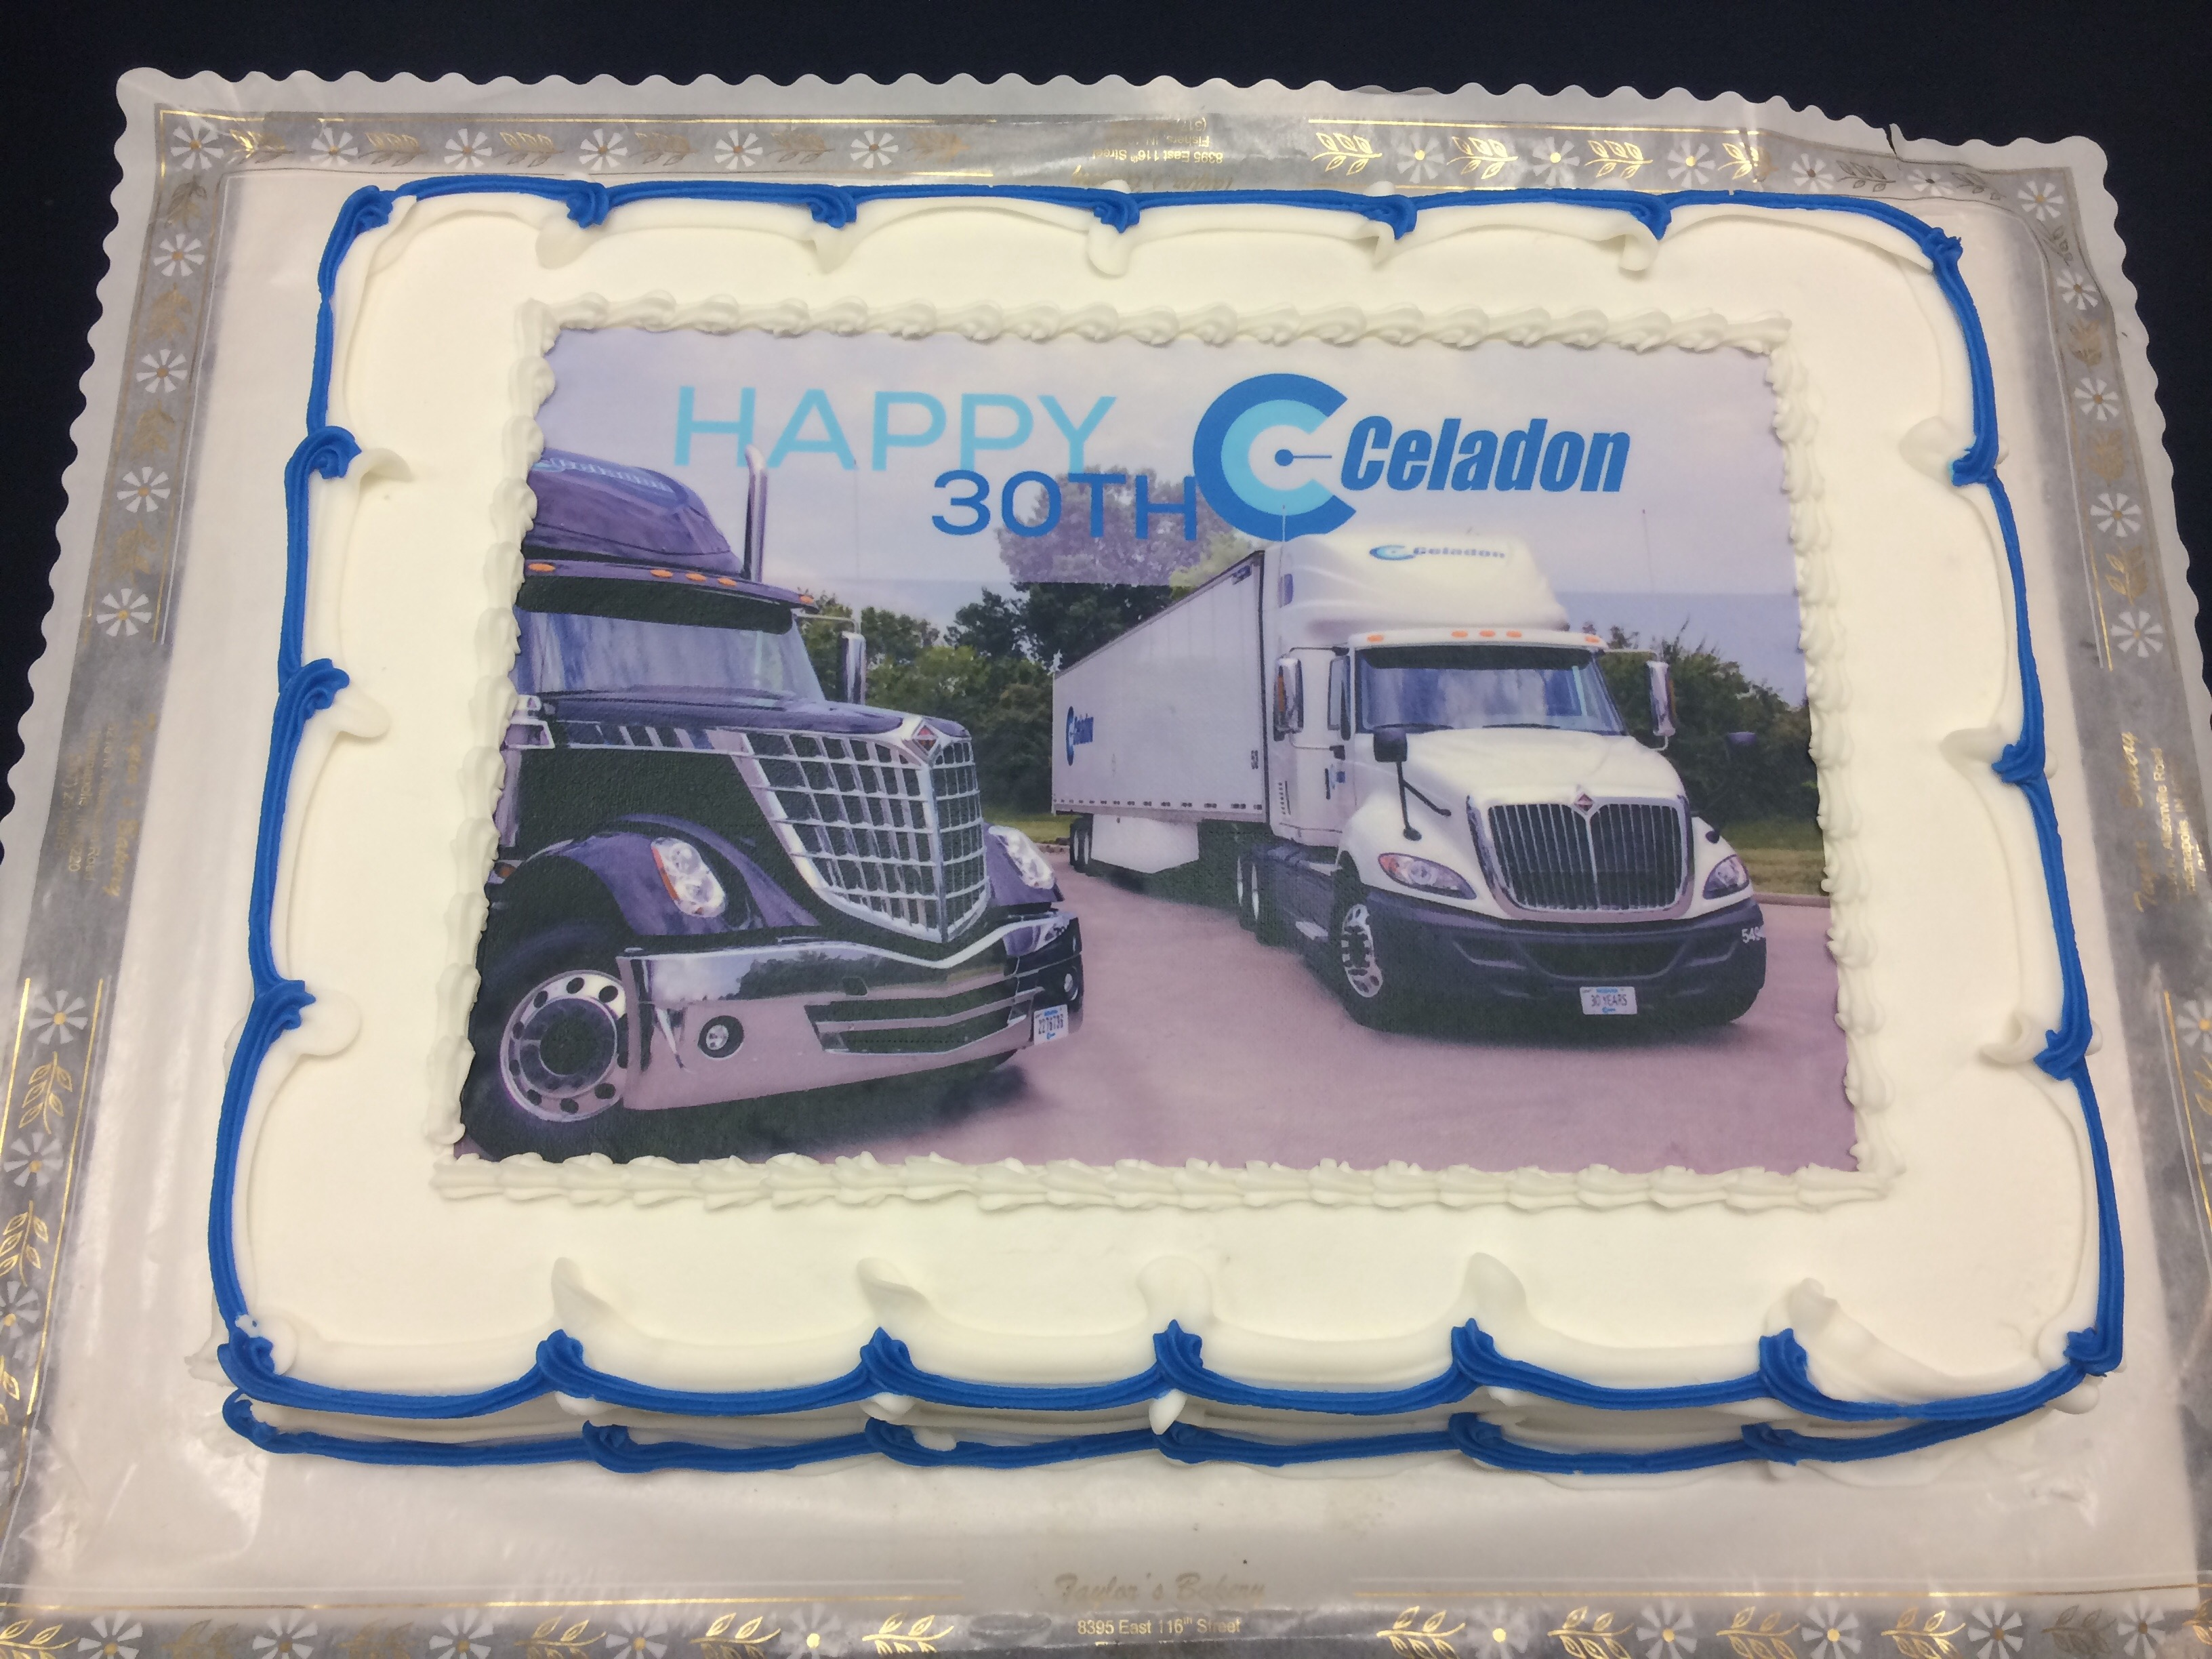 A Cake Using State Of The Art Technology That Couples Food Coloring With An Inkjet Printer Here Are Few Examples Cakes We Have Done For Some